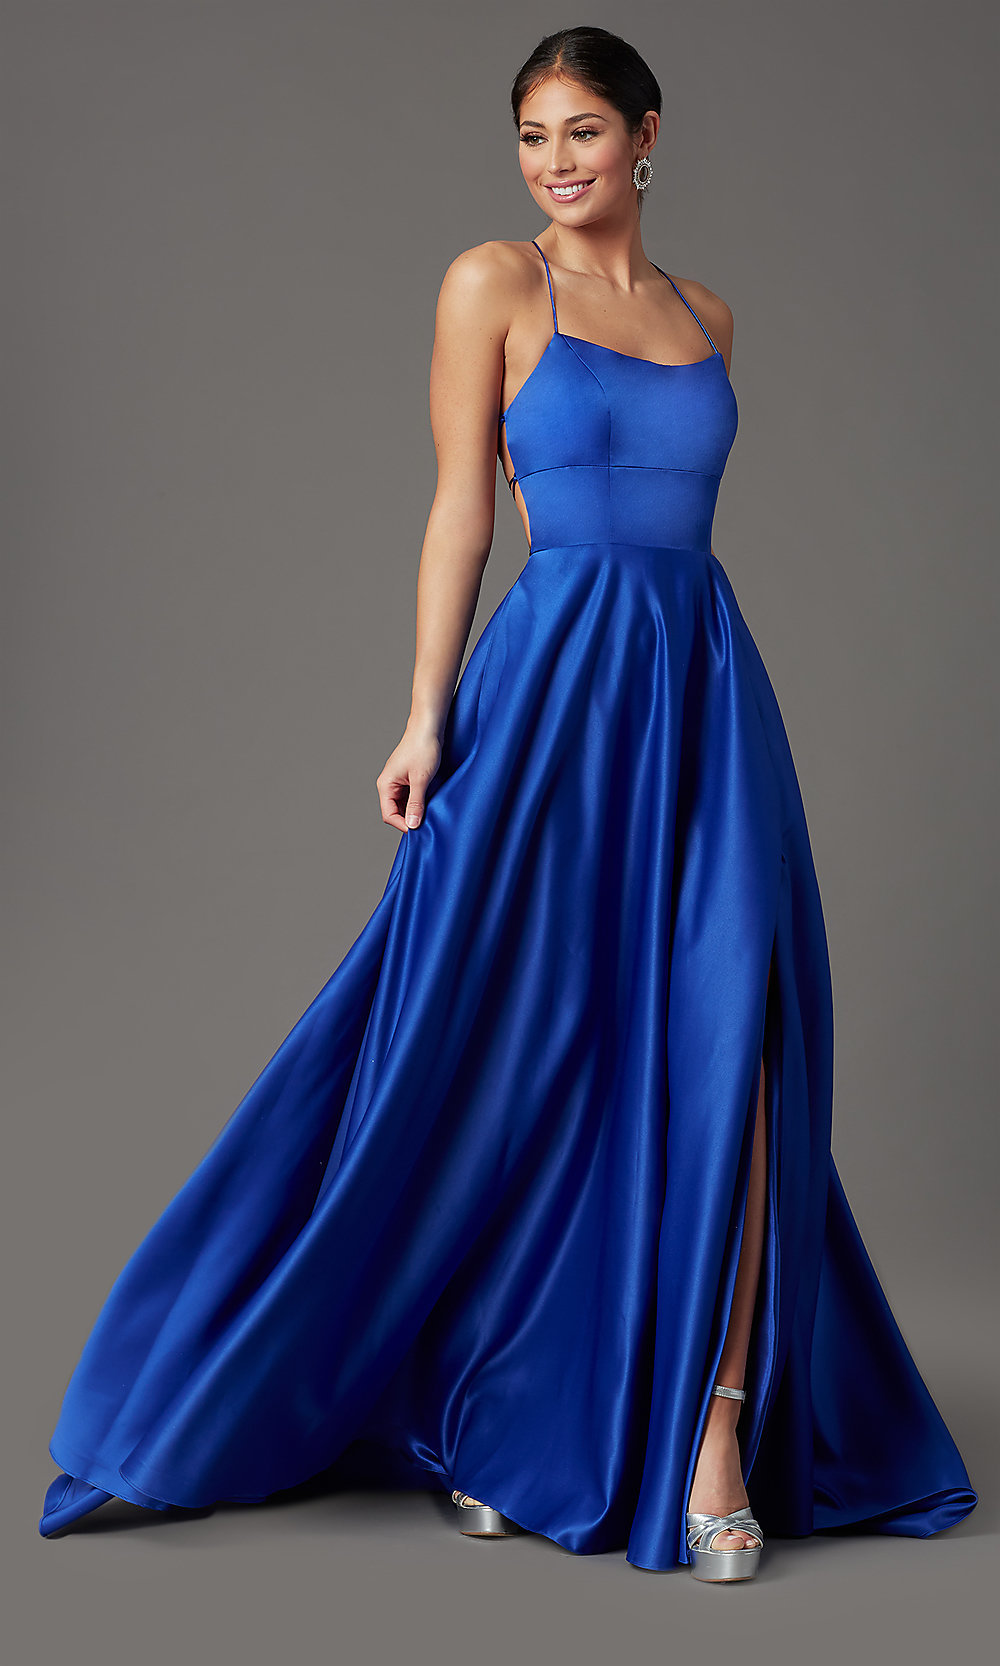 Blue Long Satin Prom Dress With Pockets Promgirl